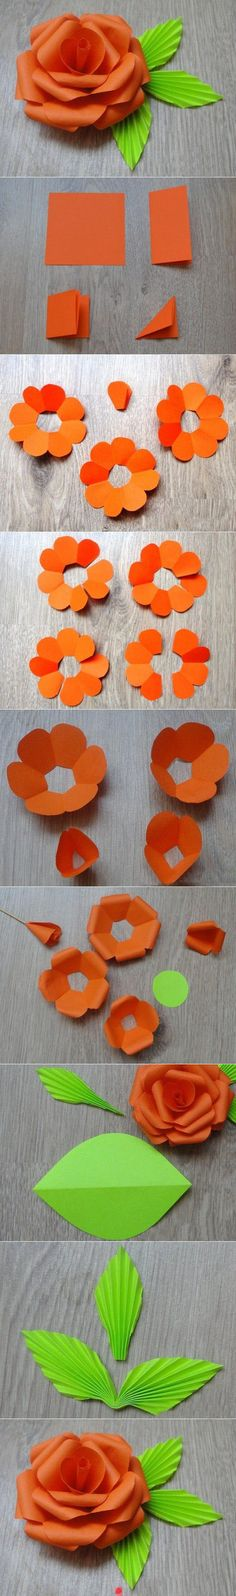 future boyfriend, summer crafts, flower pictures, paper roses, flower crafts, diy crafts home, paper flowers, wrapped gifts, diy projects